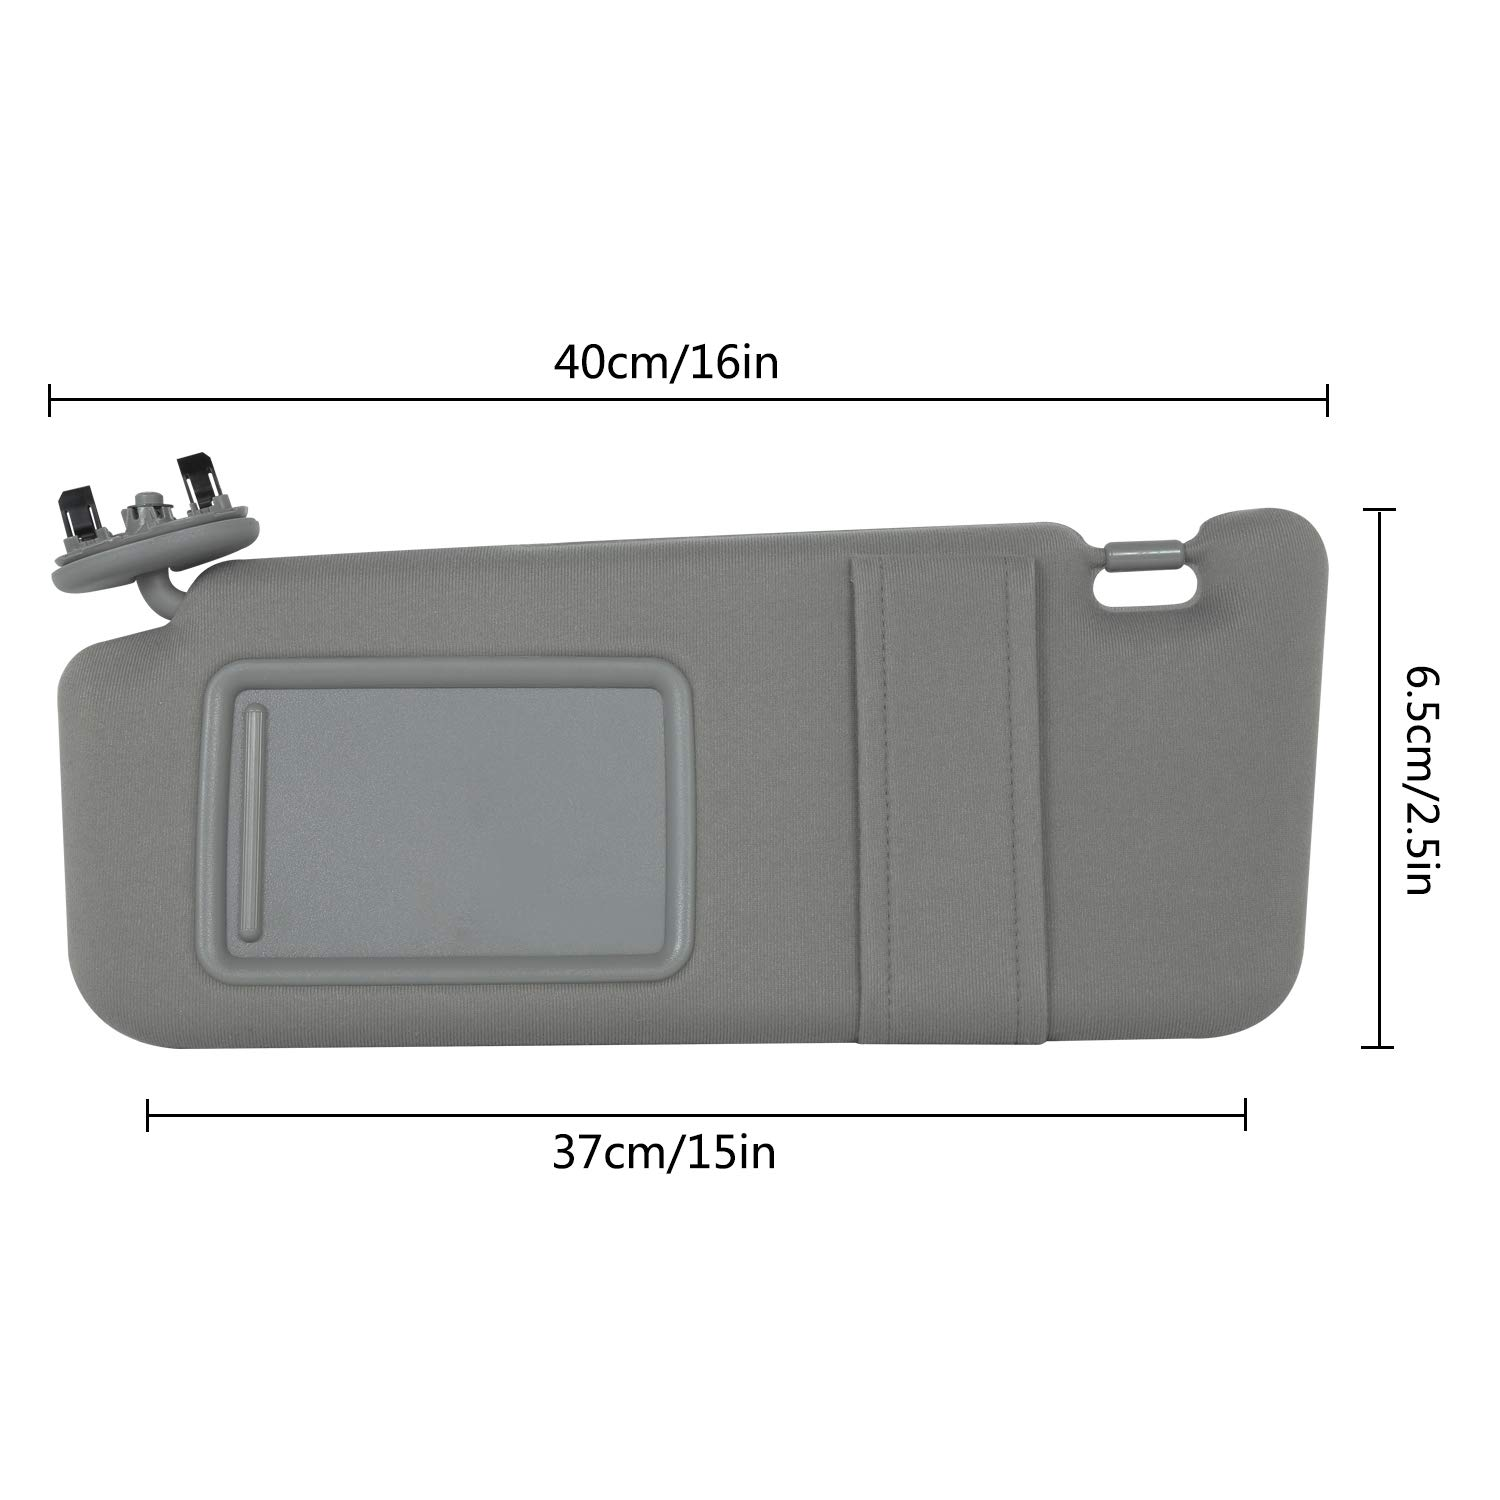 Gray 1 Pack HANGHANG Camry Sun Protection Visor Left Driver Side Fits for 2007 2008 2009 2010 2011 Toyota Camry and Camry HV Without Sunroof and Light 74320-06780-B0